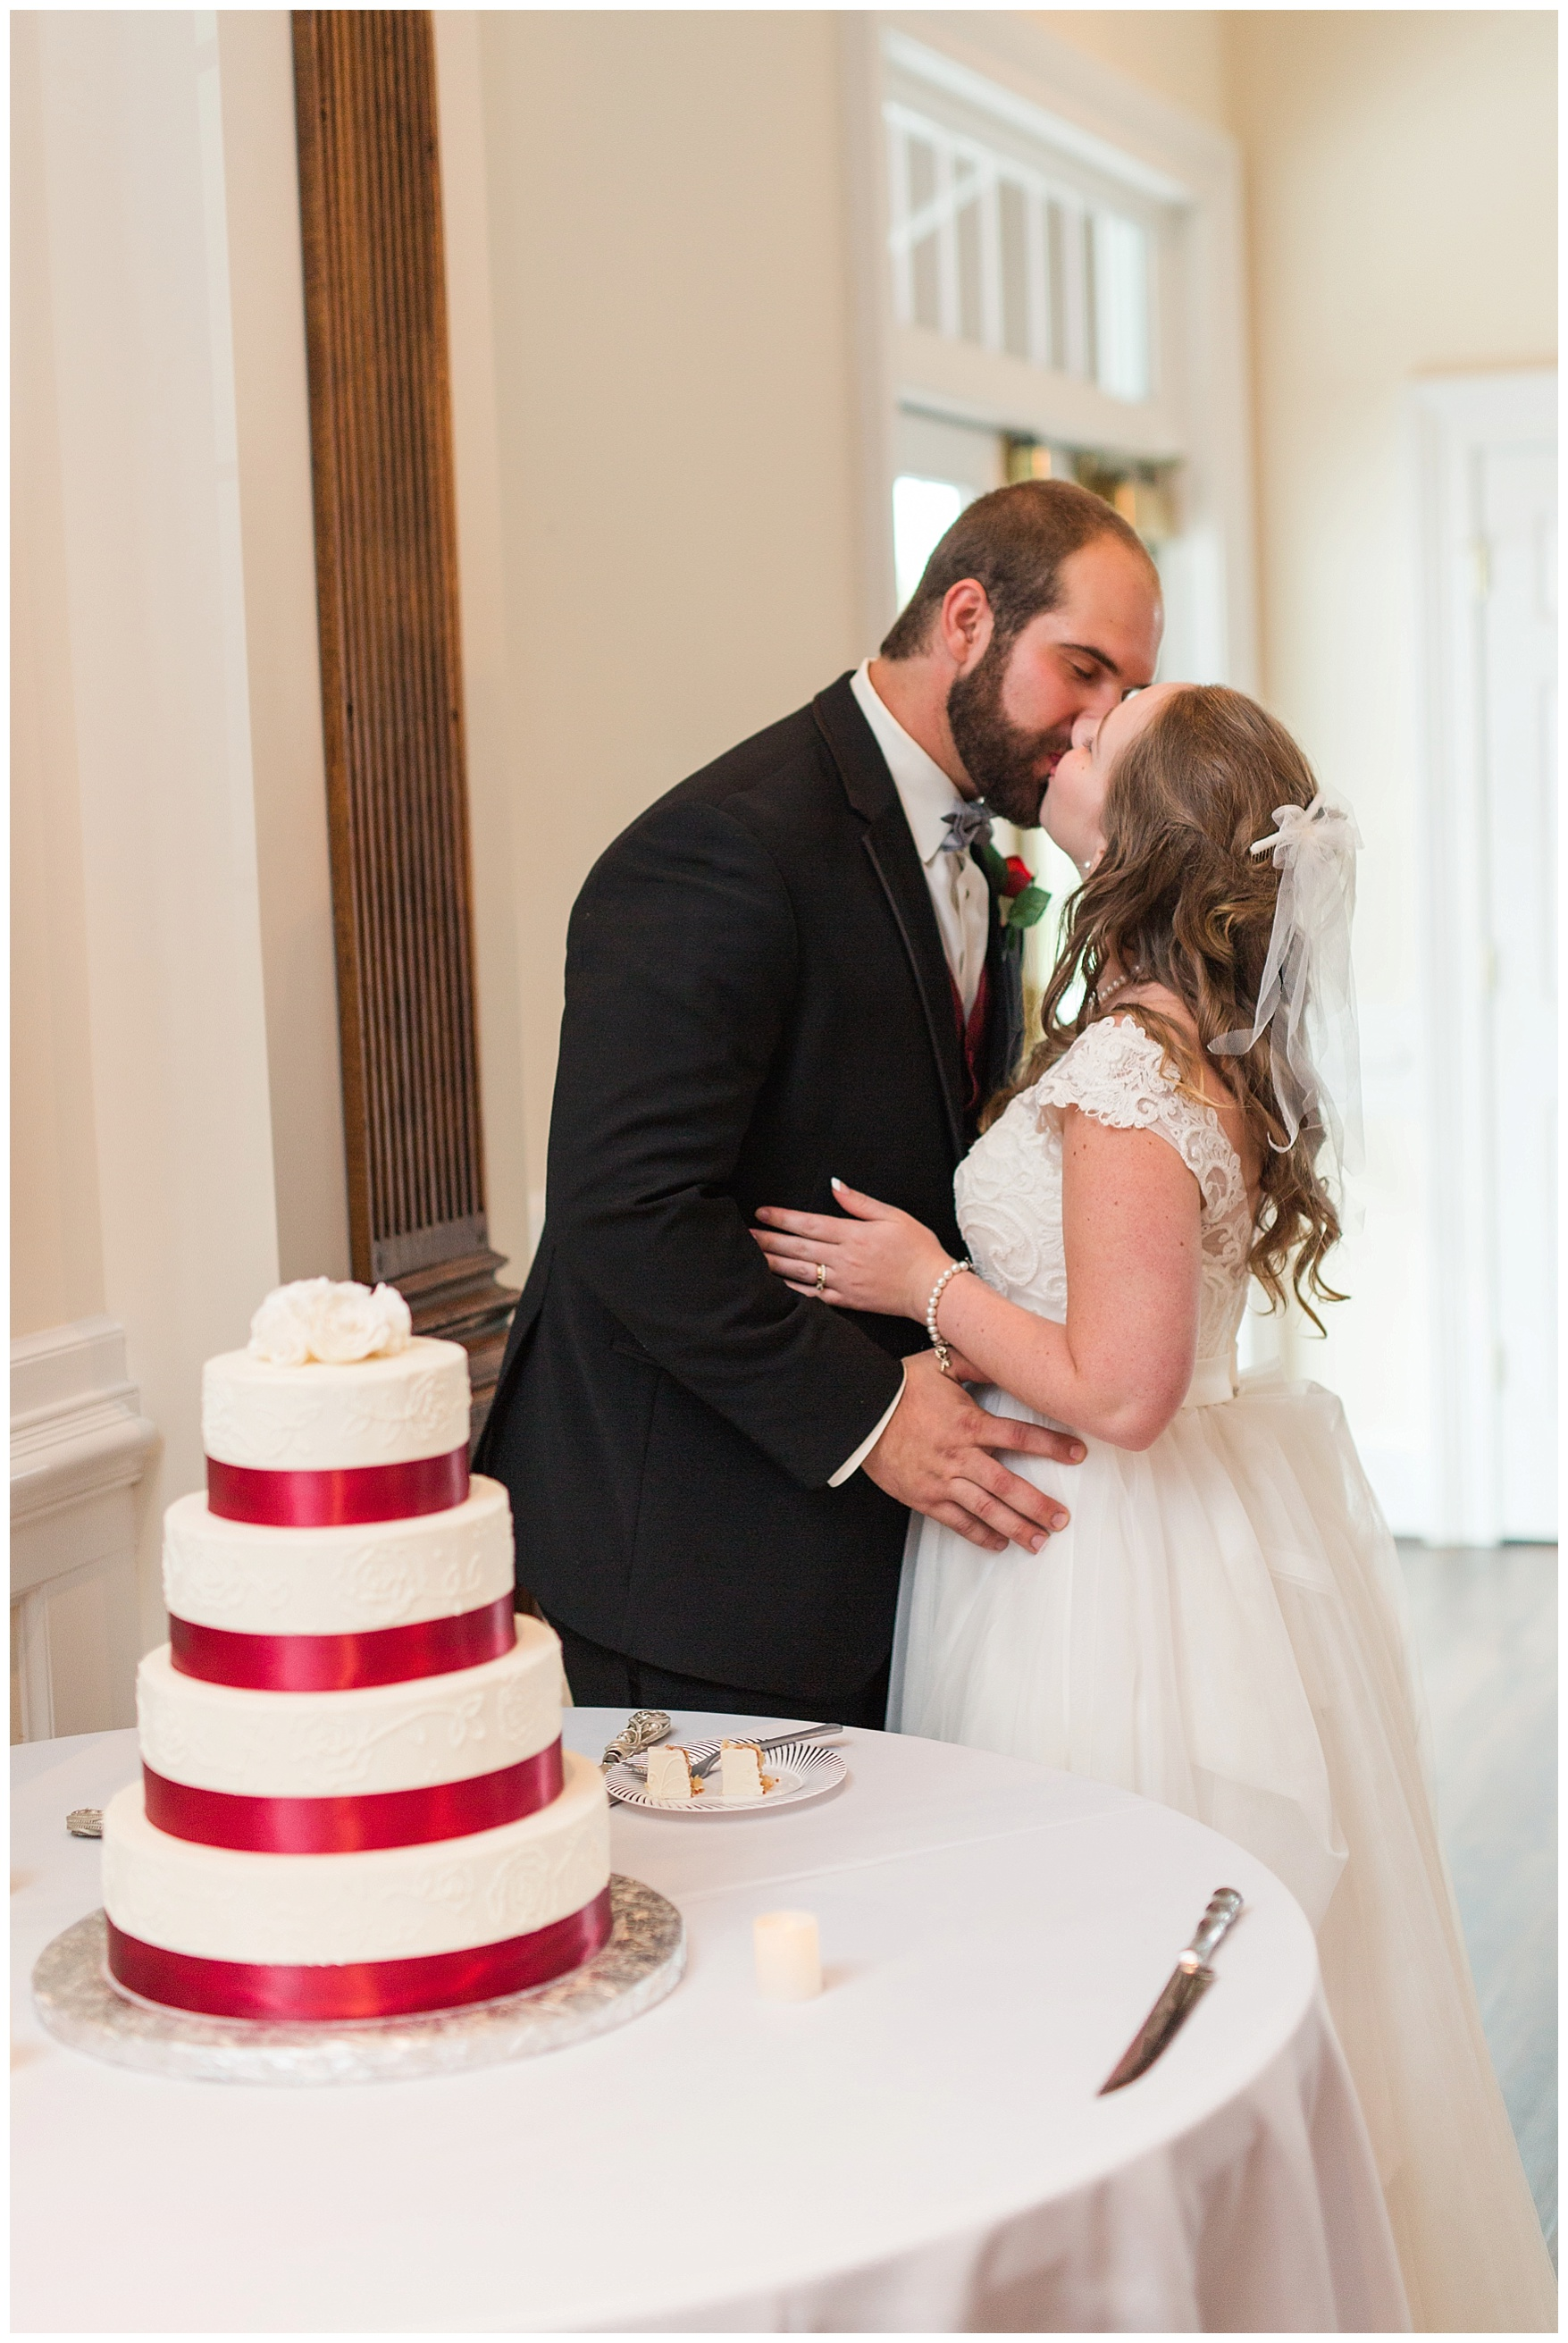 Lynchburg and Charlottesville Wedding Photographer || Trivium Estate Wedding || www.ashleyeiban.com